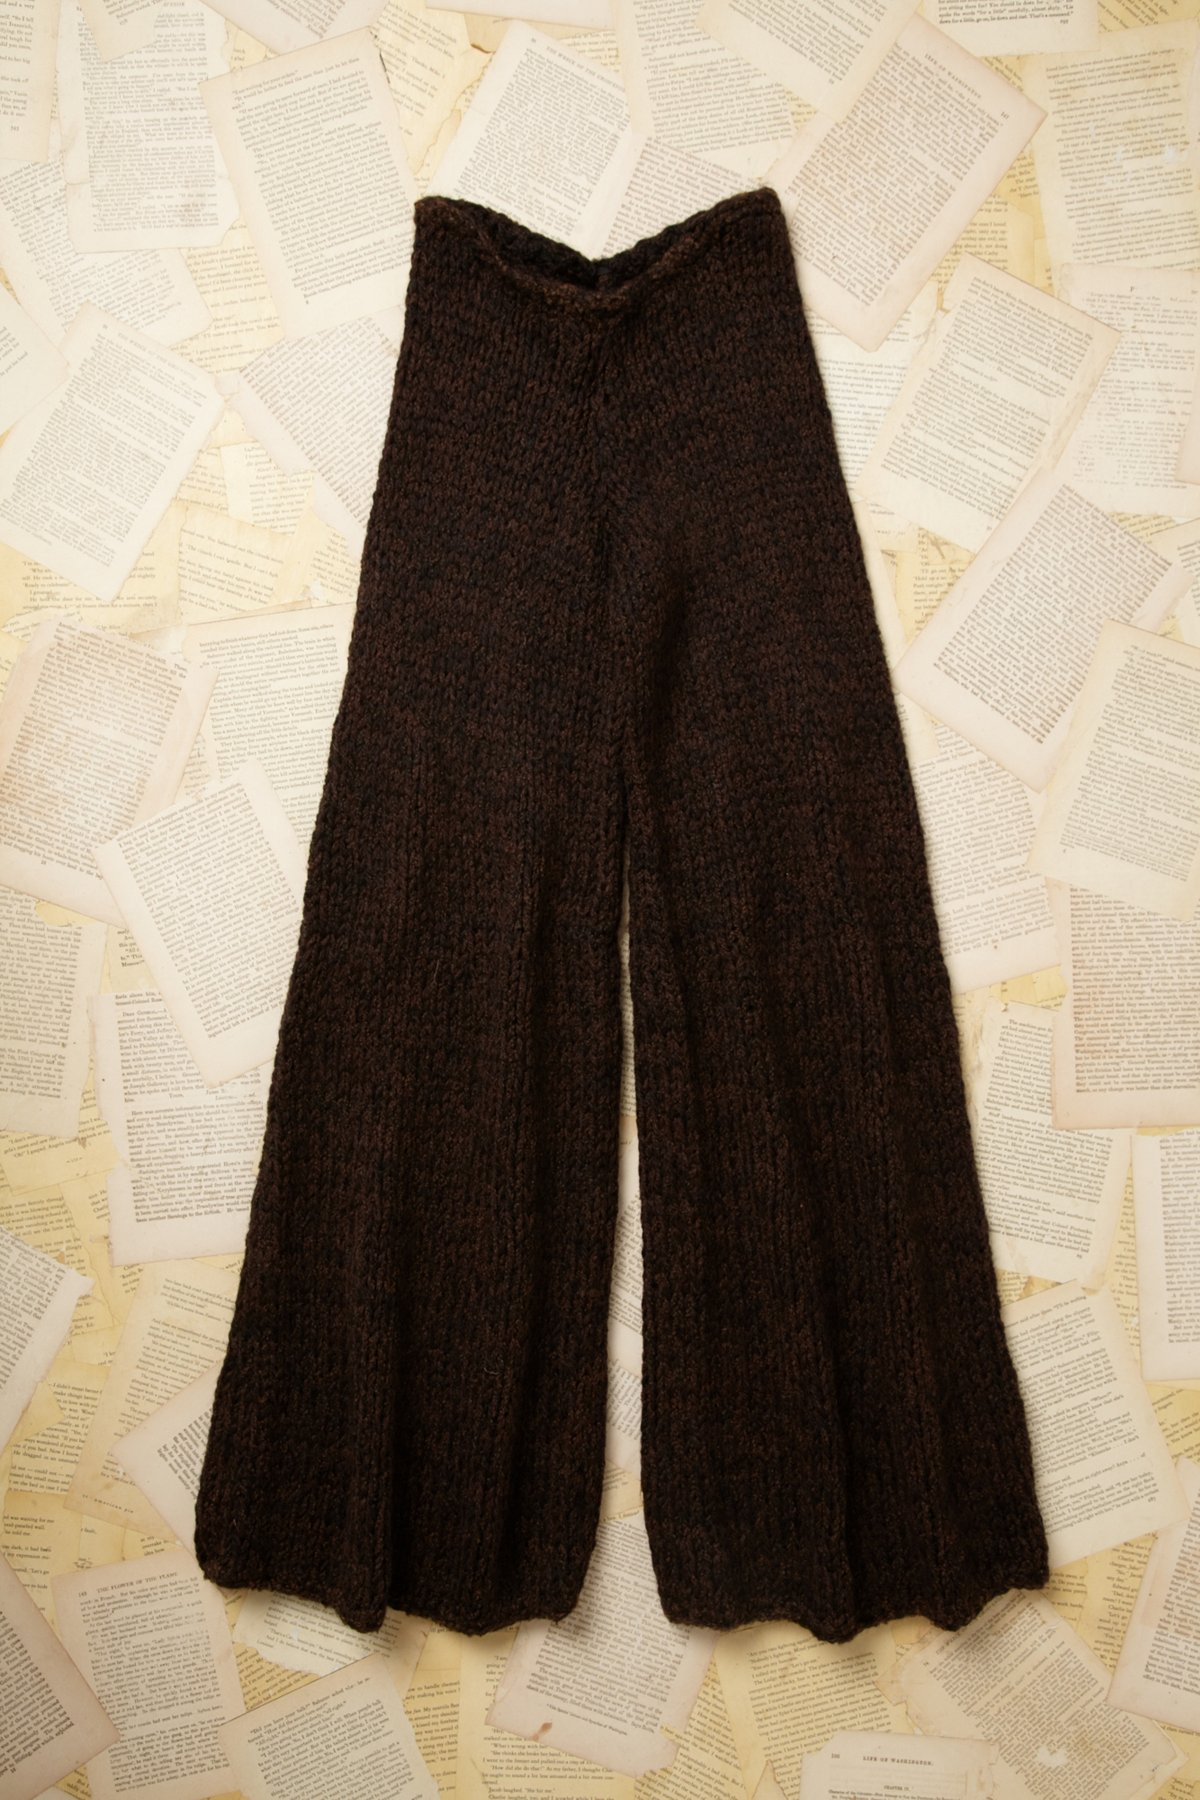 Vintage Jeanie Murray Sweater Pants